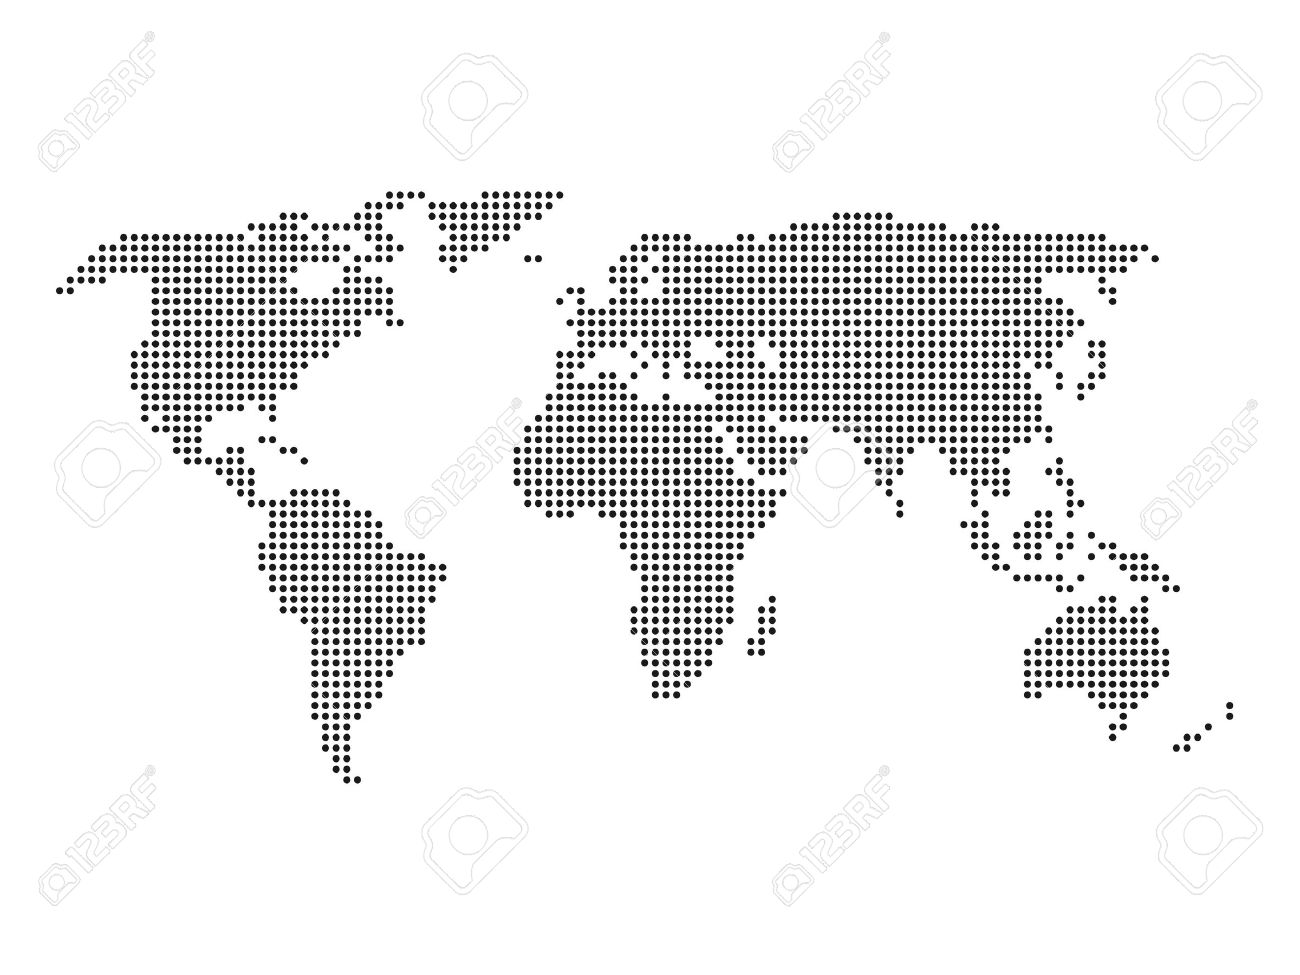 Images Of The World Map Small on small climate map, small map of europe, small black and white world maps, small map of india, small map of egypt, small map of iraq, small map of canada, small map of africa, 1080p end of the world, small map of finland, small map of america, small map of france, small map of asia, rug of the world, small globe of the world, small map of california, small world map labeled, small map of thailand, small map of iran, small blank world map,